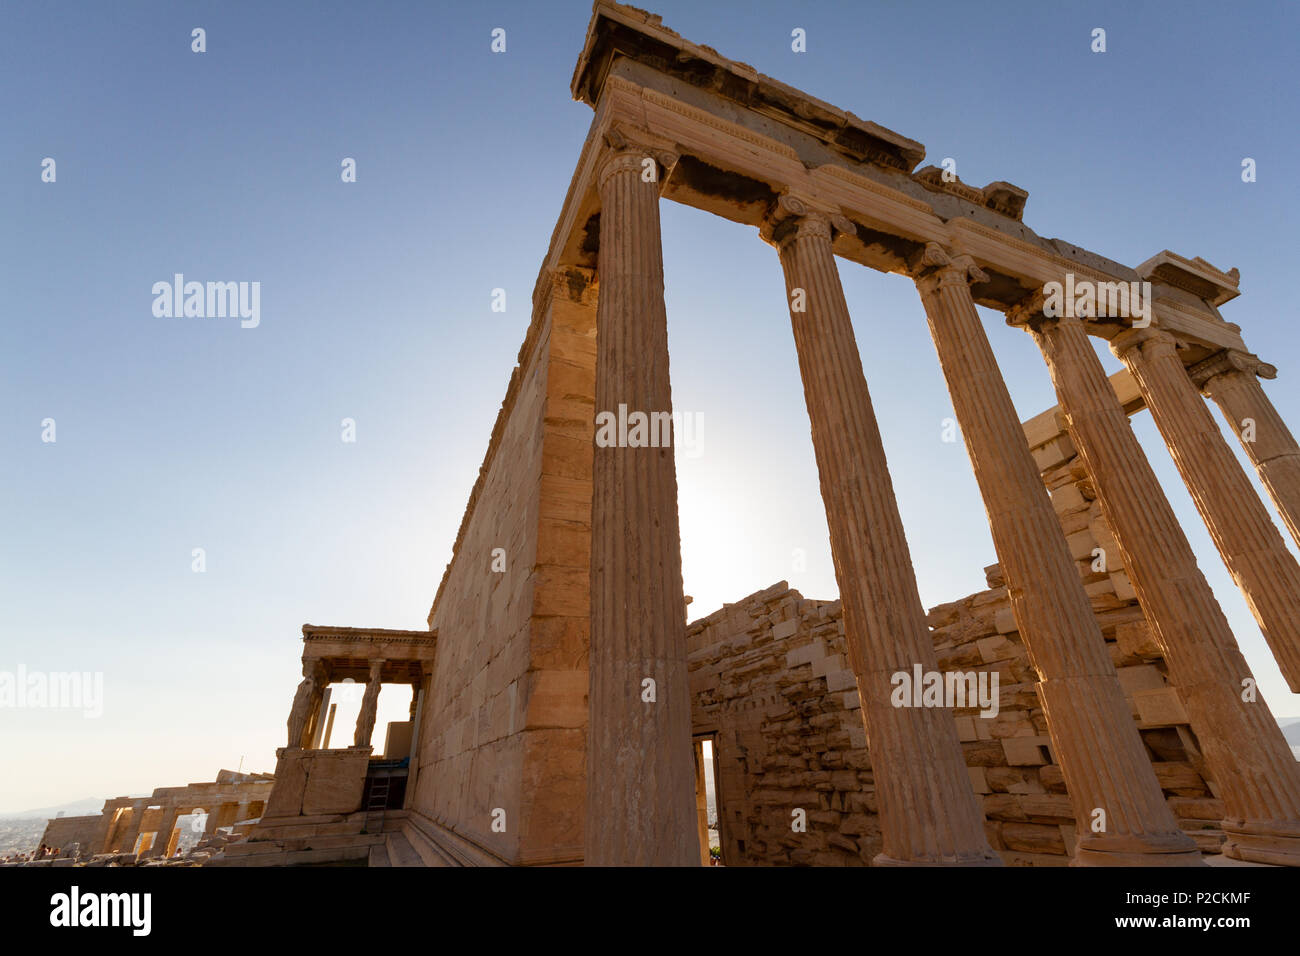 Columns of a temple on the Acropolis of Athens, Greece photographed from a low perspective - Stock Image